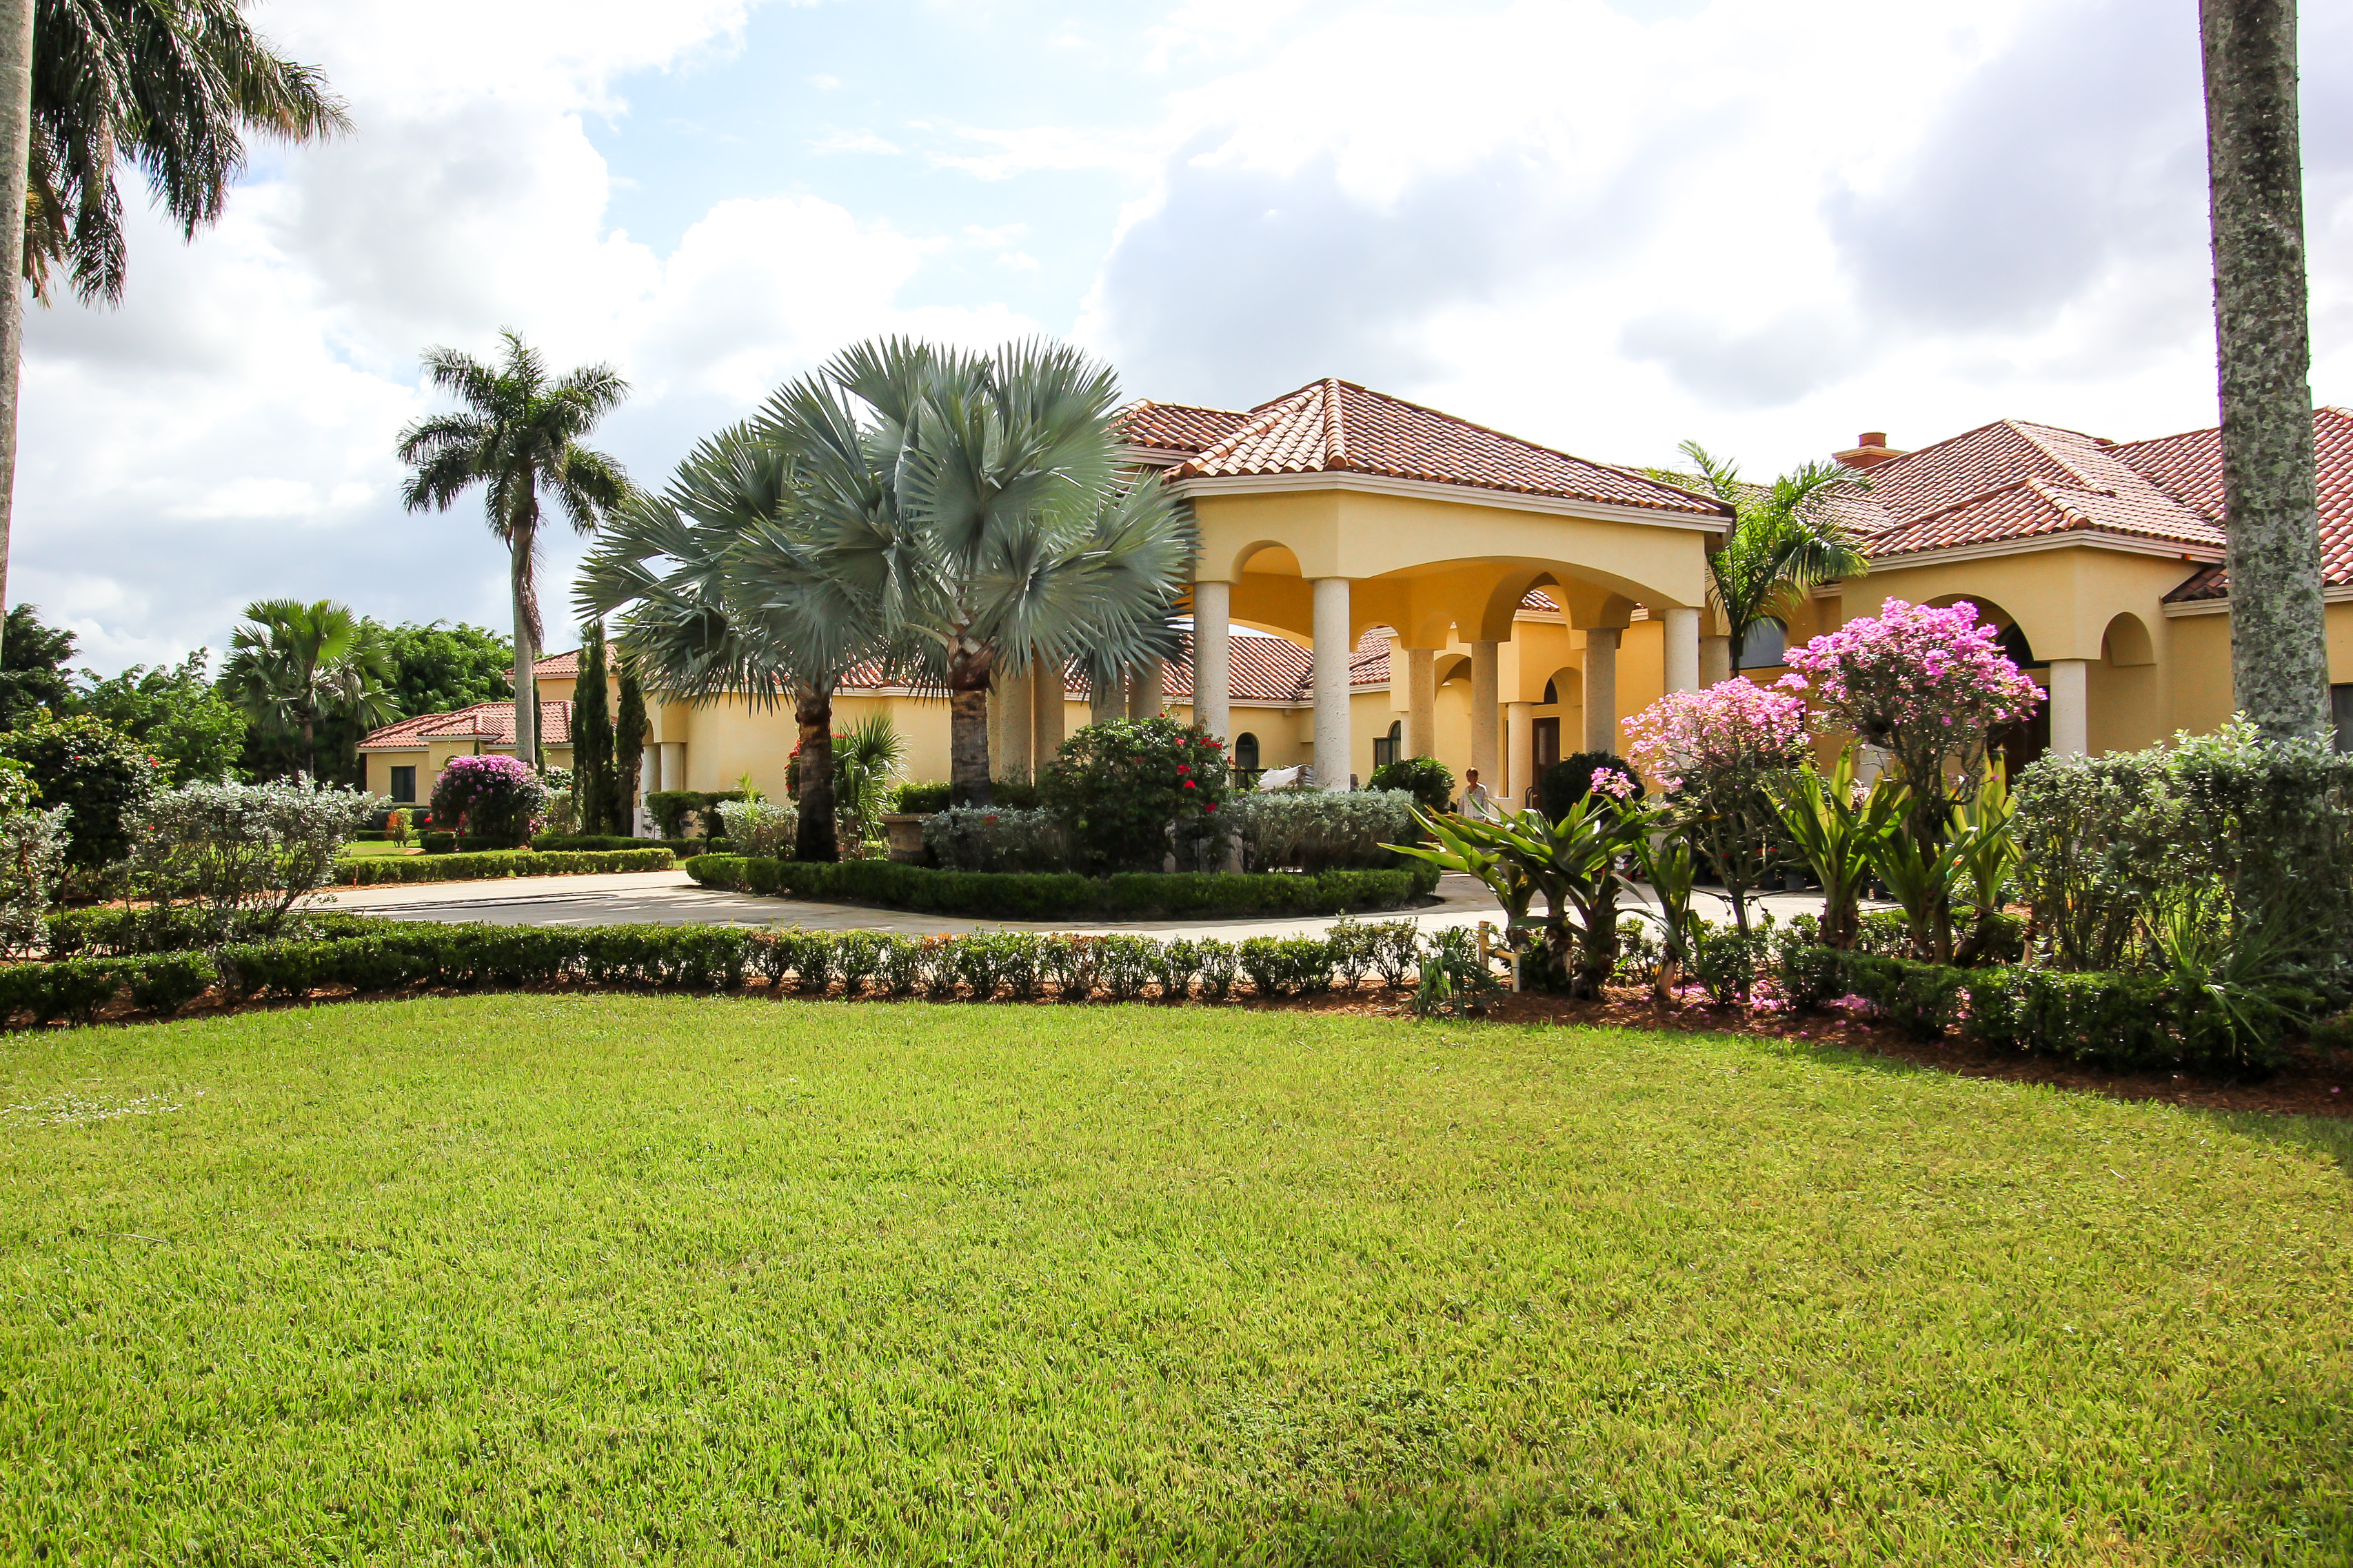 Maison unifamiliale pour l Vente à 15300 Golden Point Lane Palm Beach Point, Wellington, Florida 33414 États-Unis